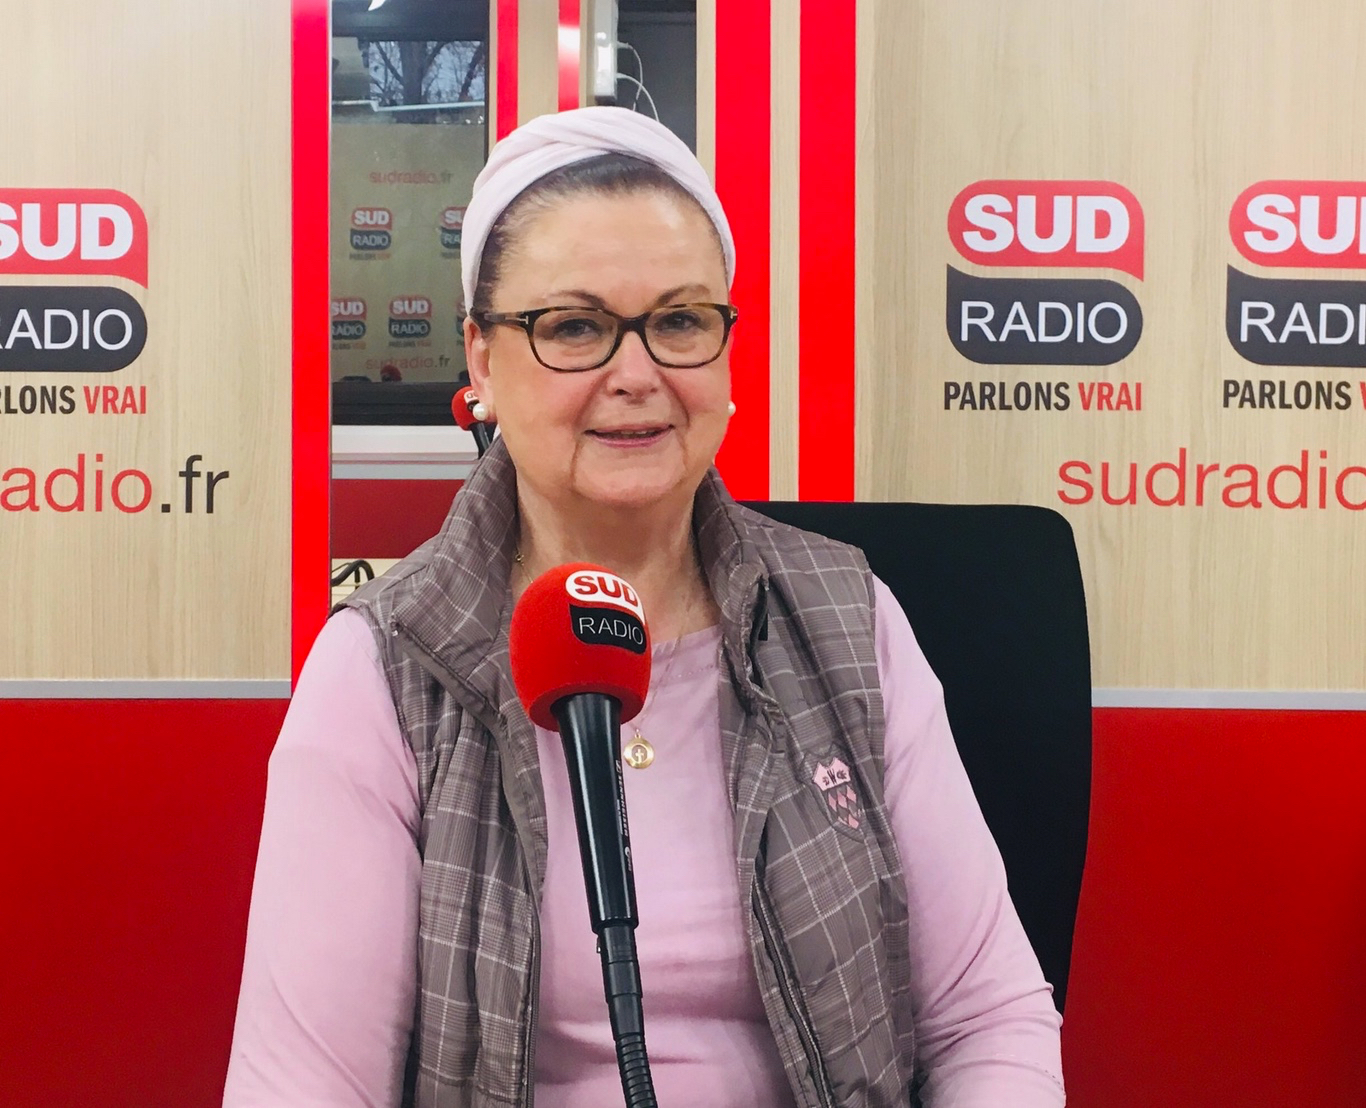 https://www.sudradio.fr/wp-content/uploads/2019/03/christine-boutin.jpg